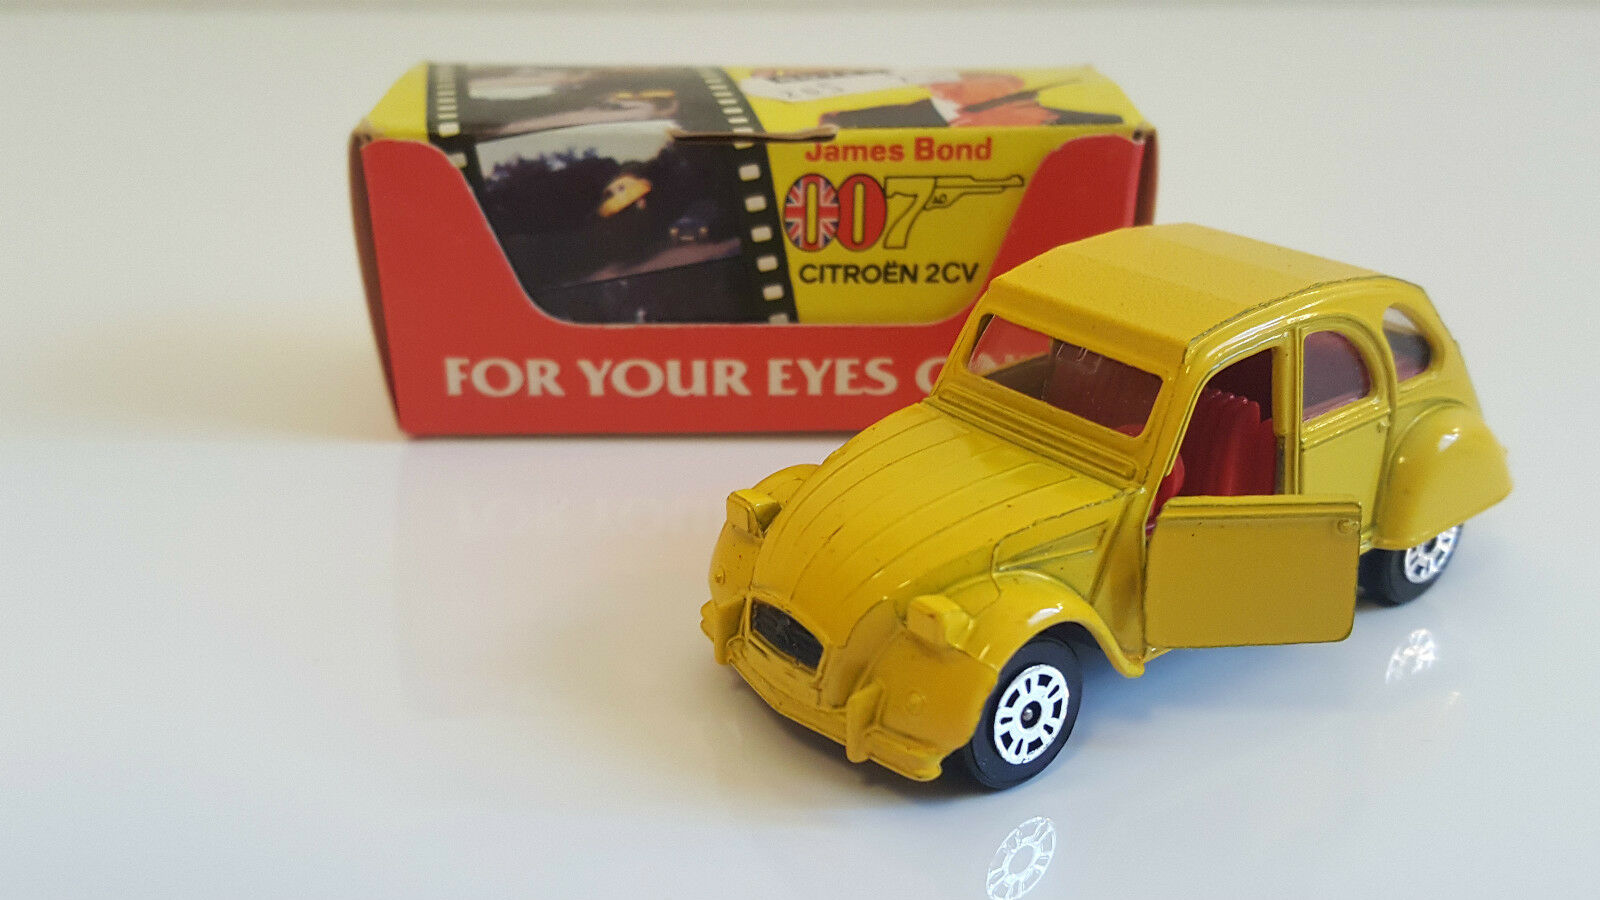 Corgi - Citroën 2 CV James Bond 007  For your eyes only